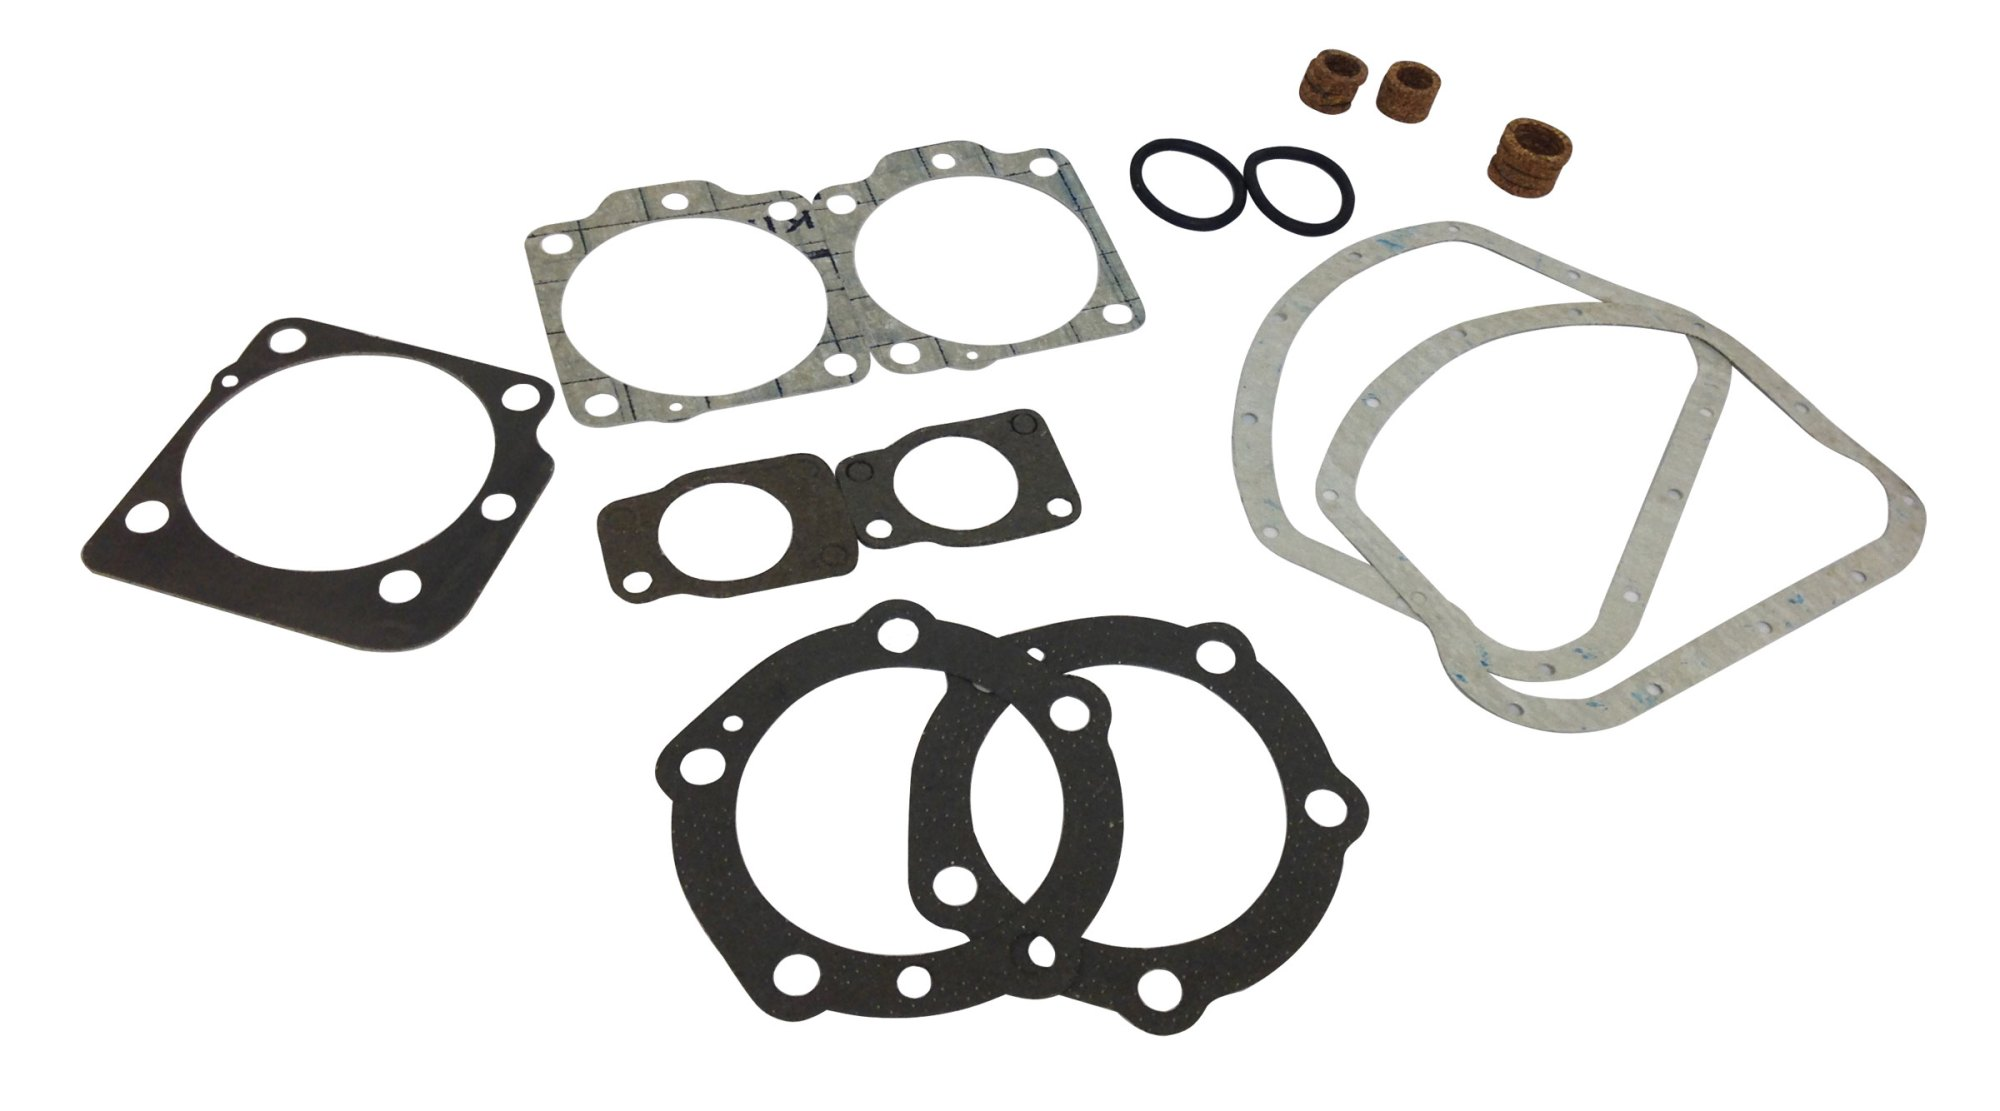 hight resolution of top end gasket set for harley davidson ohv panheads 1948 54 17028 48 bmi karts and parts